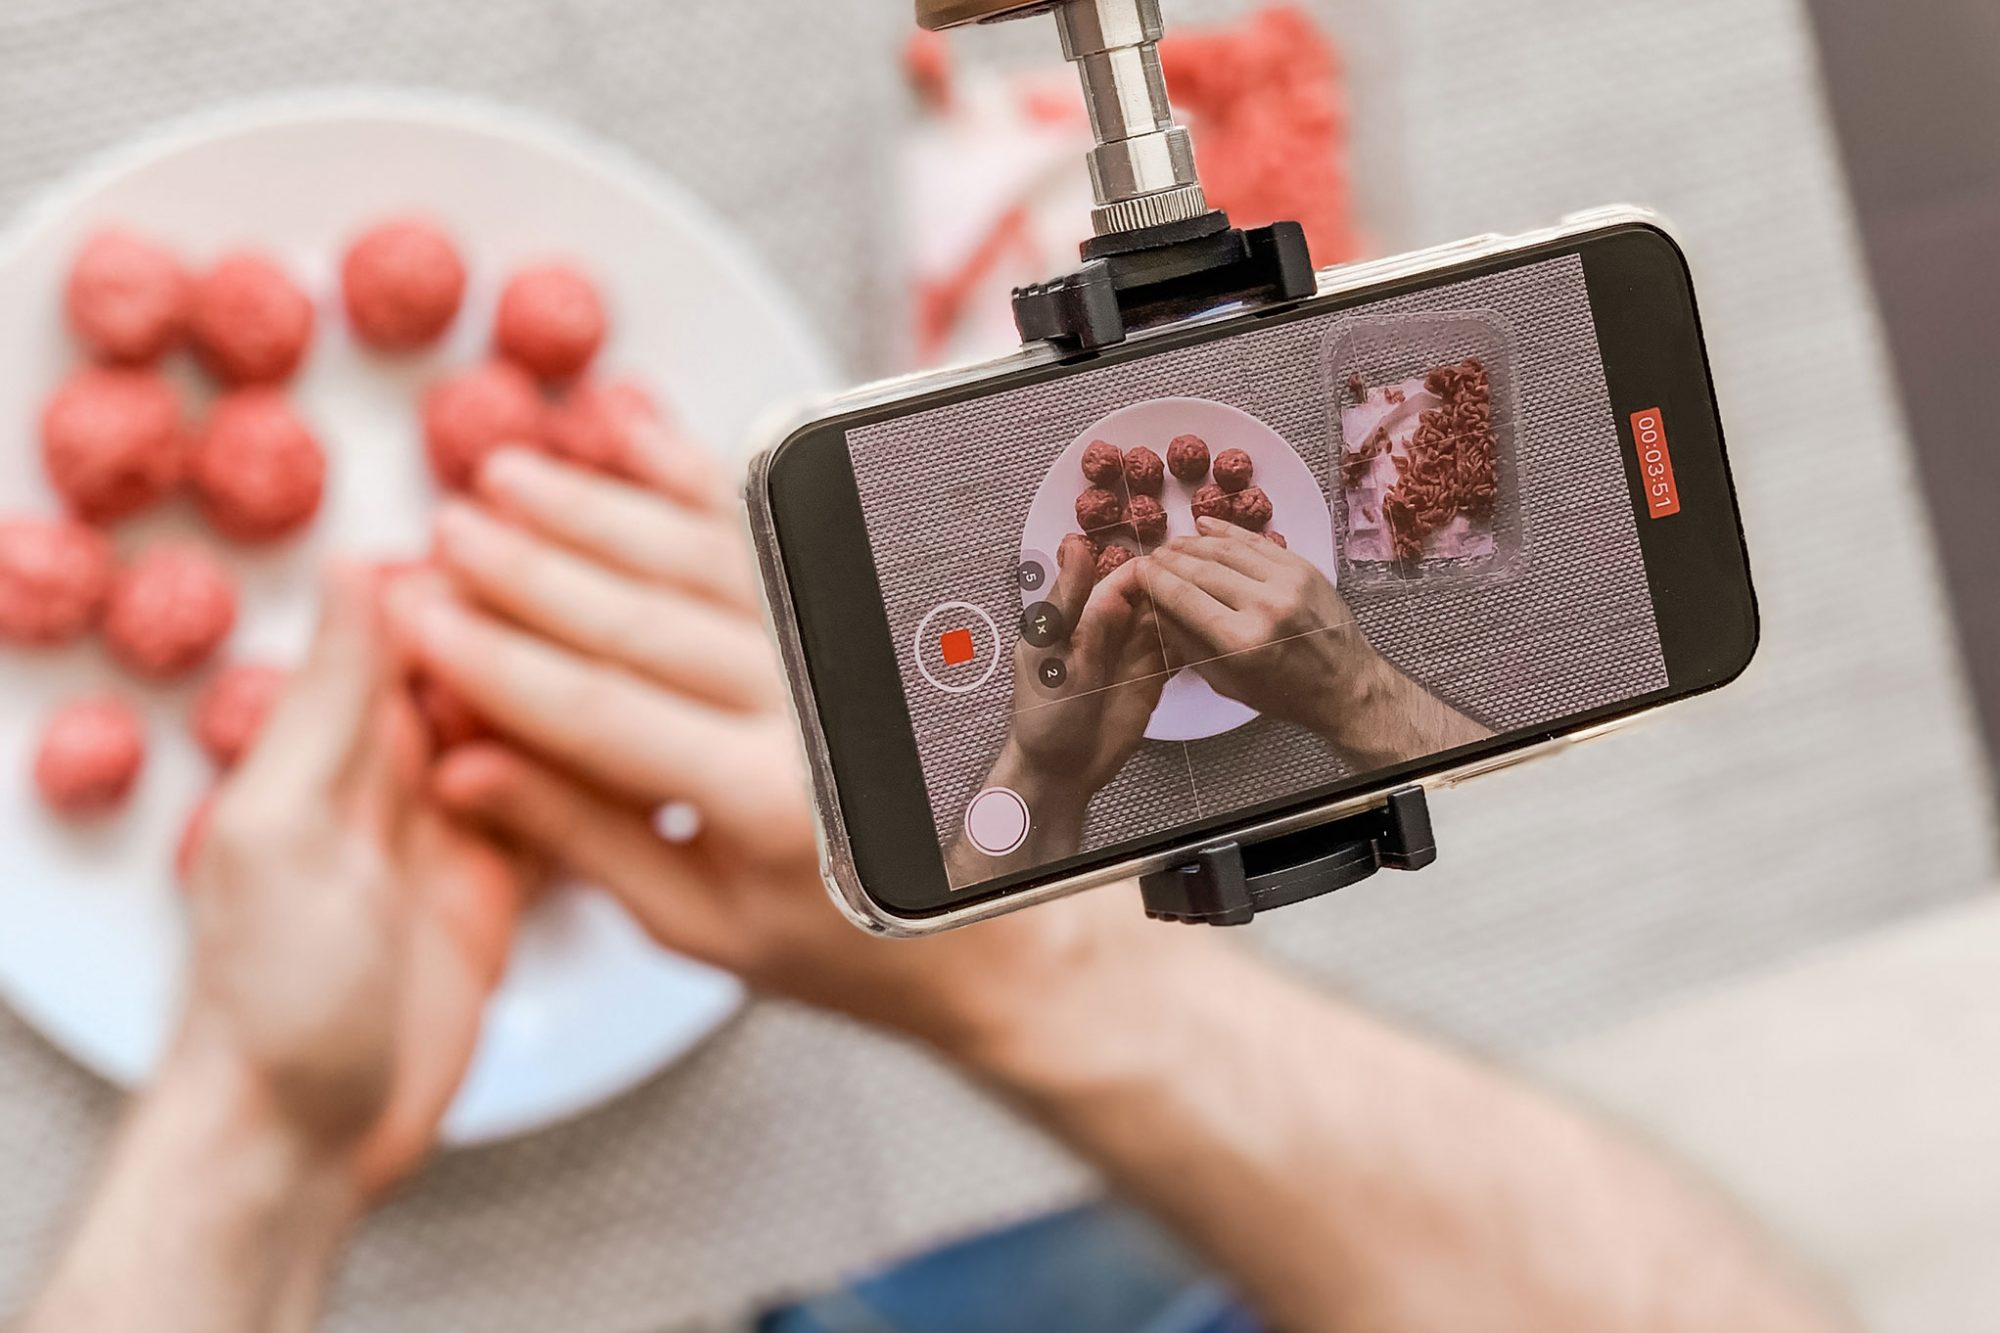 somebody making meatballs and filming it on an iphone